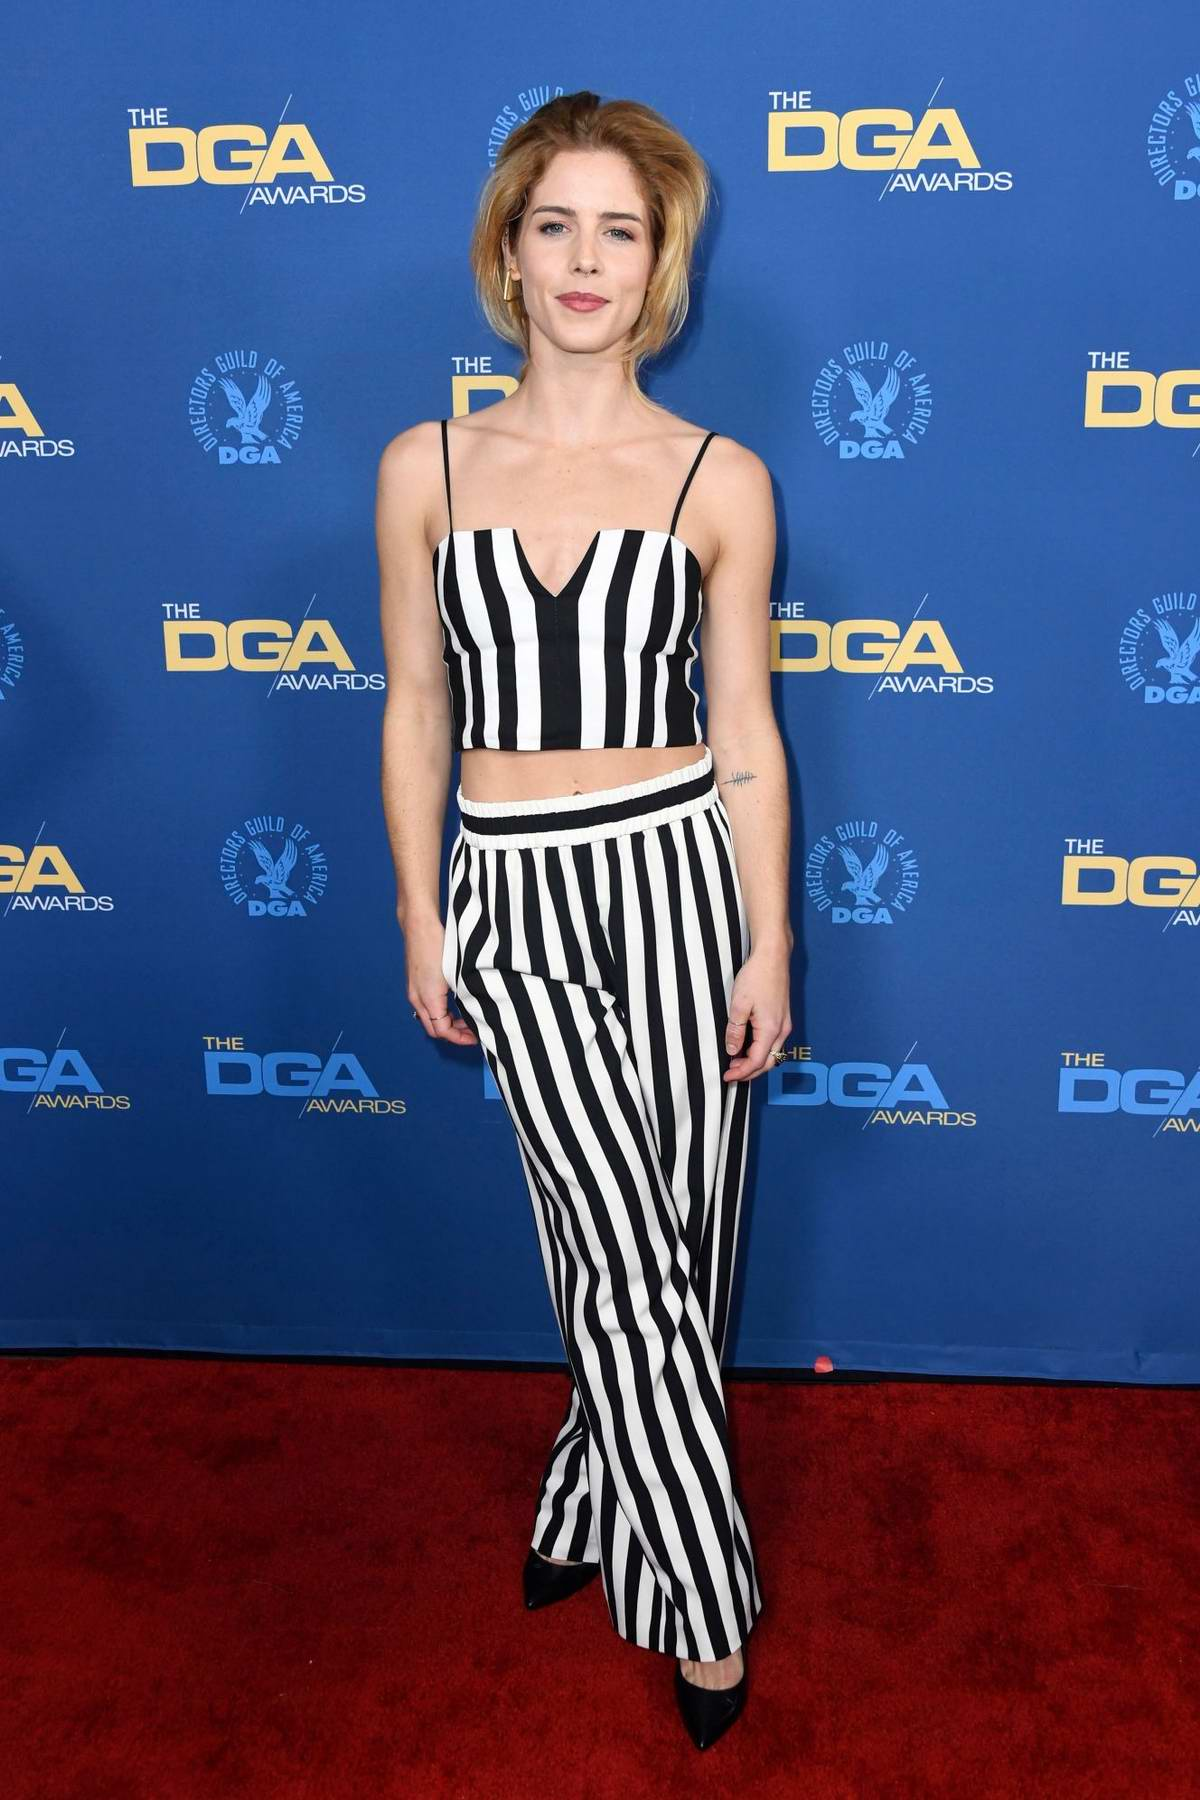 Emily Bett Rickards attends the 71st Annual Directors Guild Of America Awards in Hollywood, California